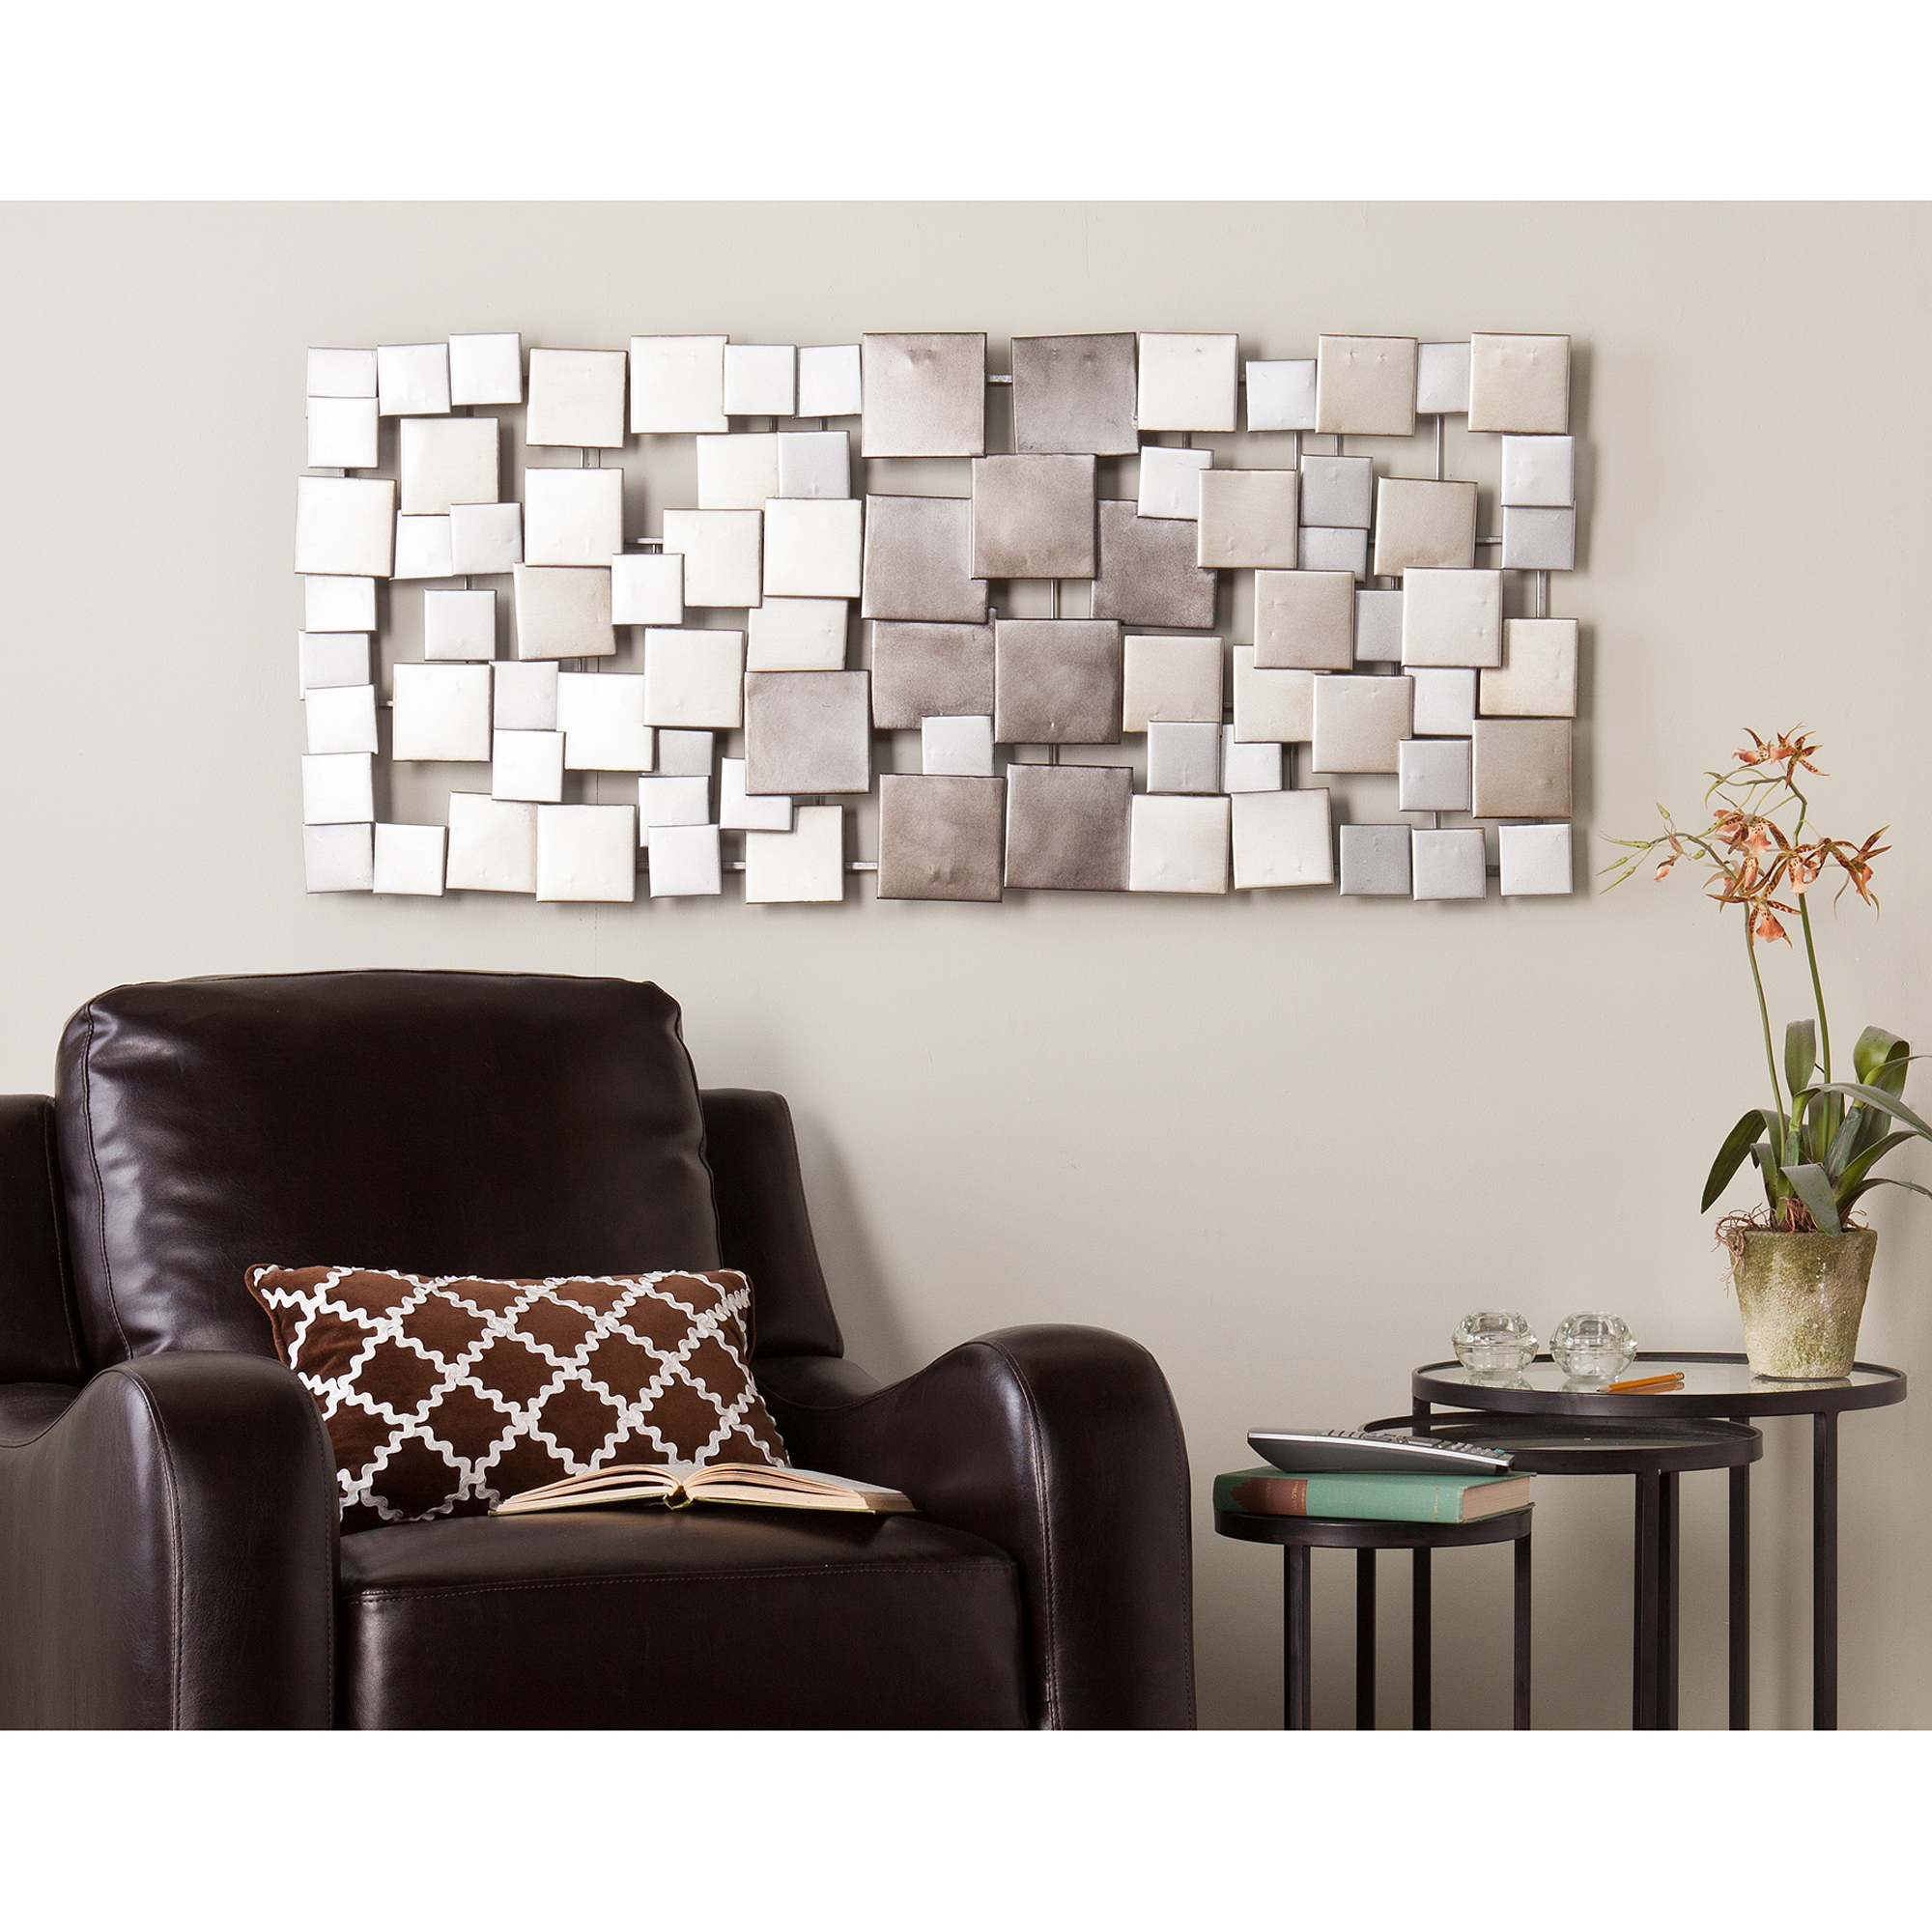 Home Decor | Walmart.com